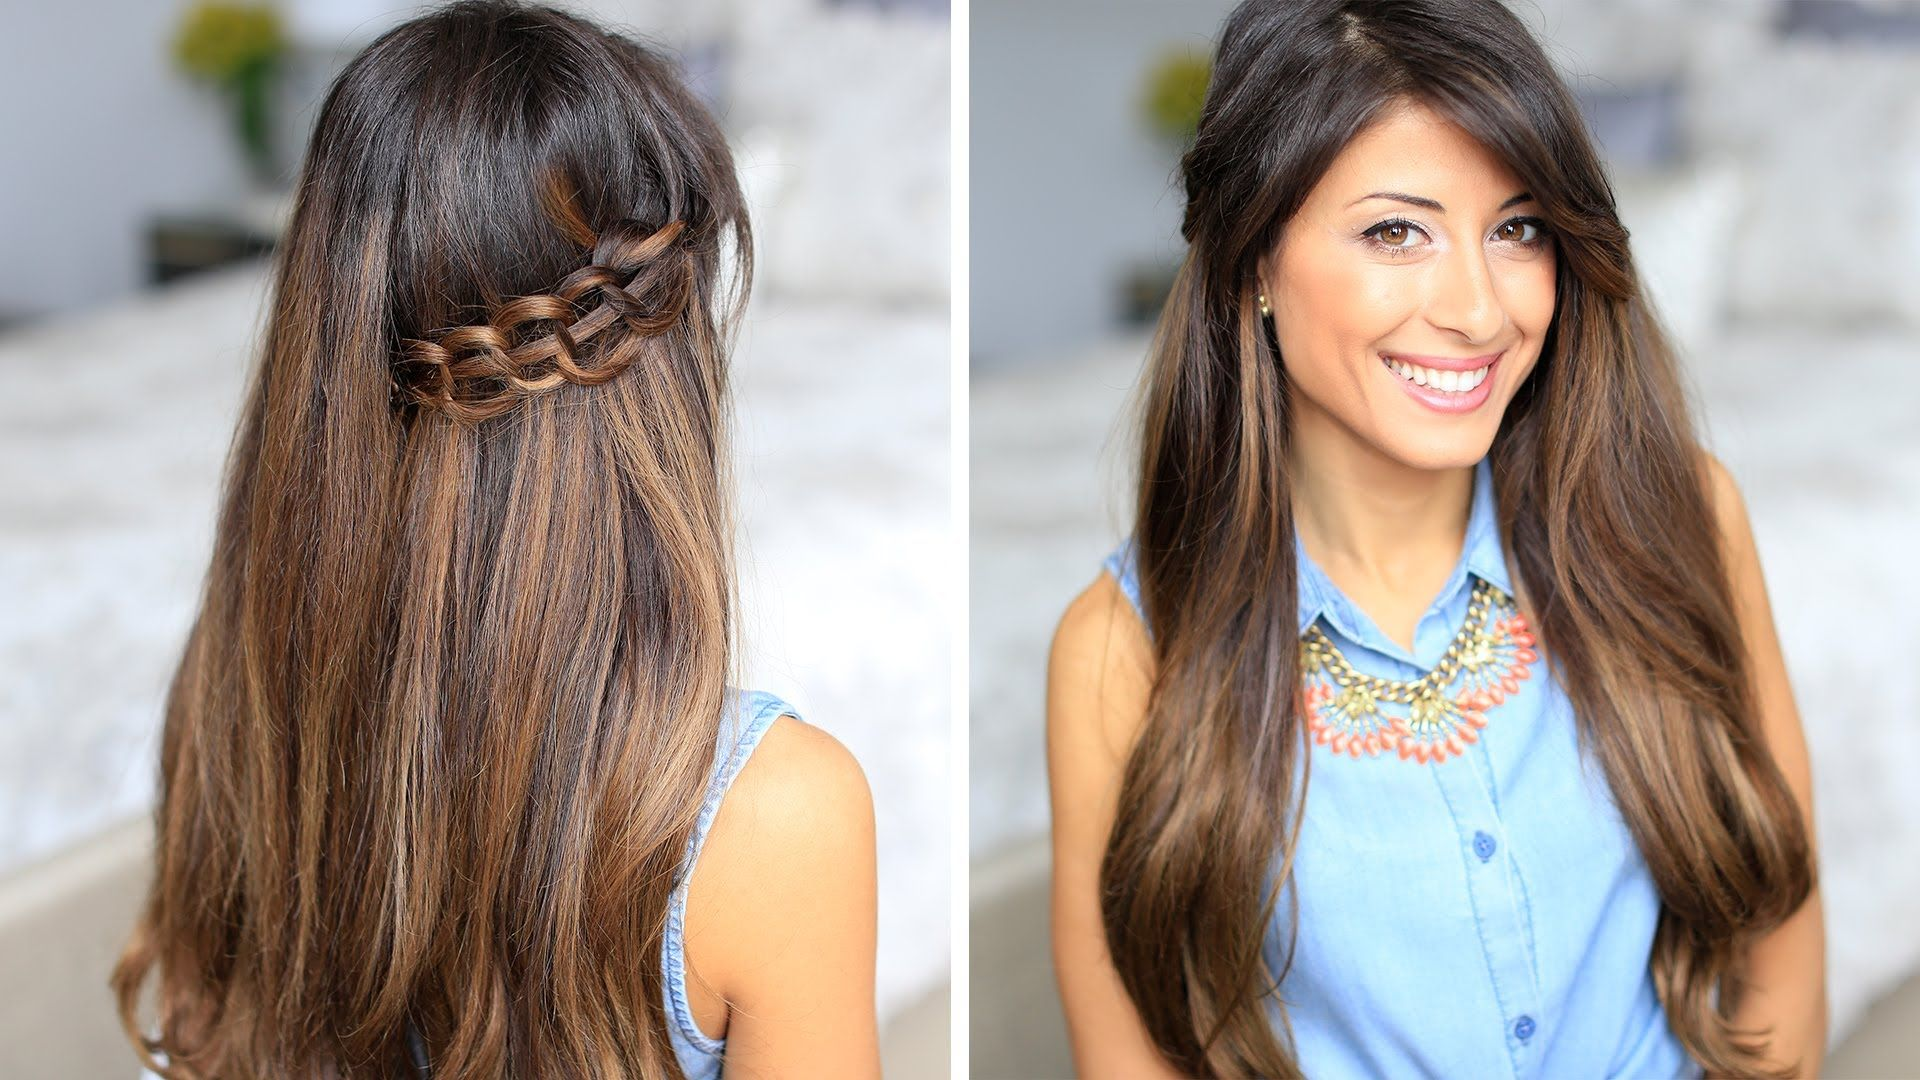 How to Stitch Braid Hair Tutorial Seems easy enough to try and